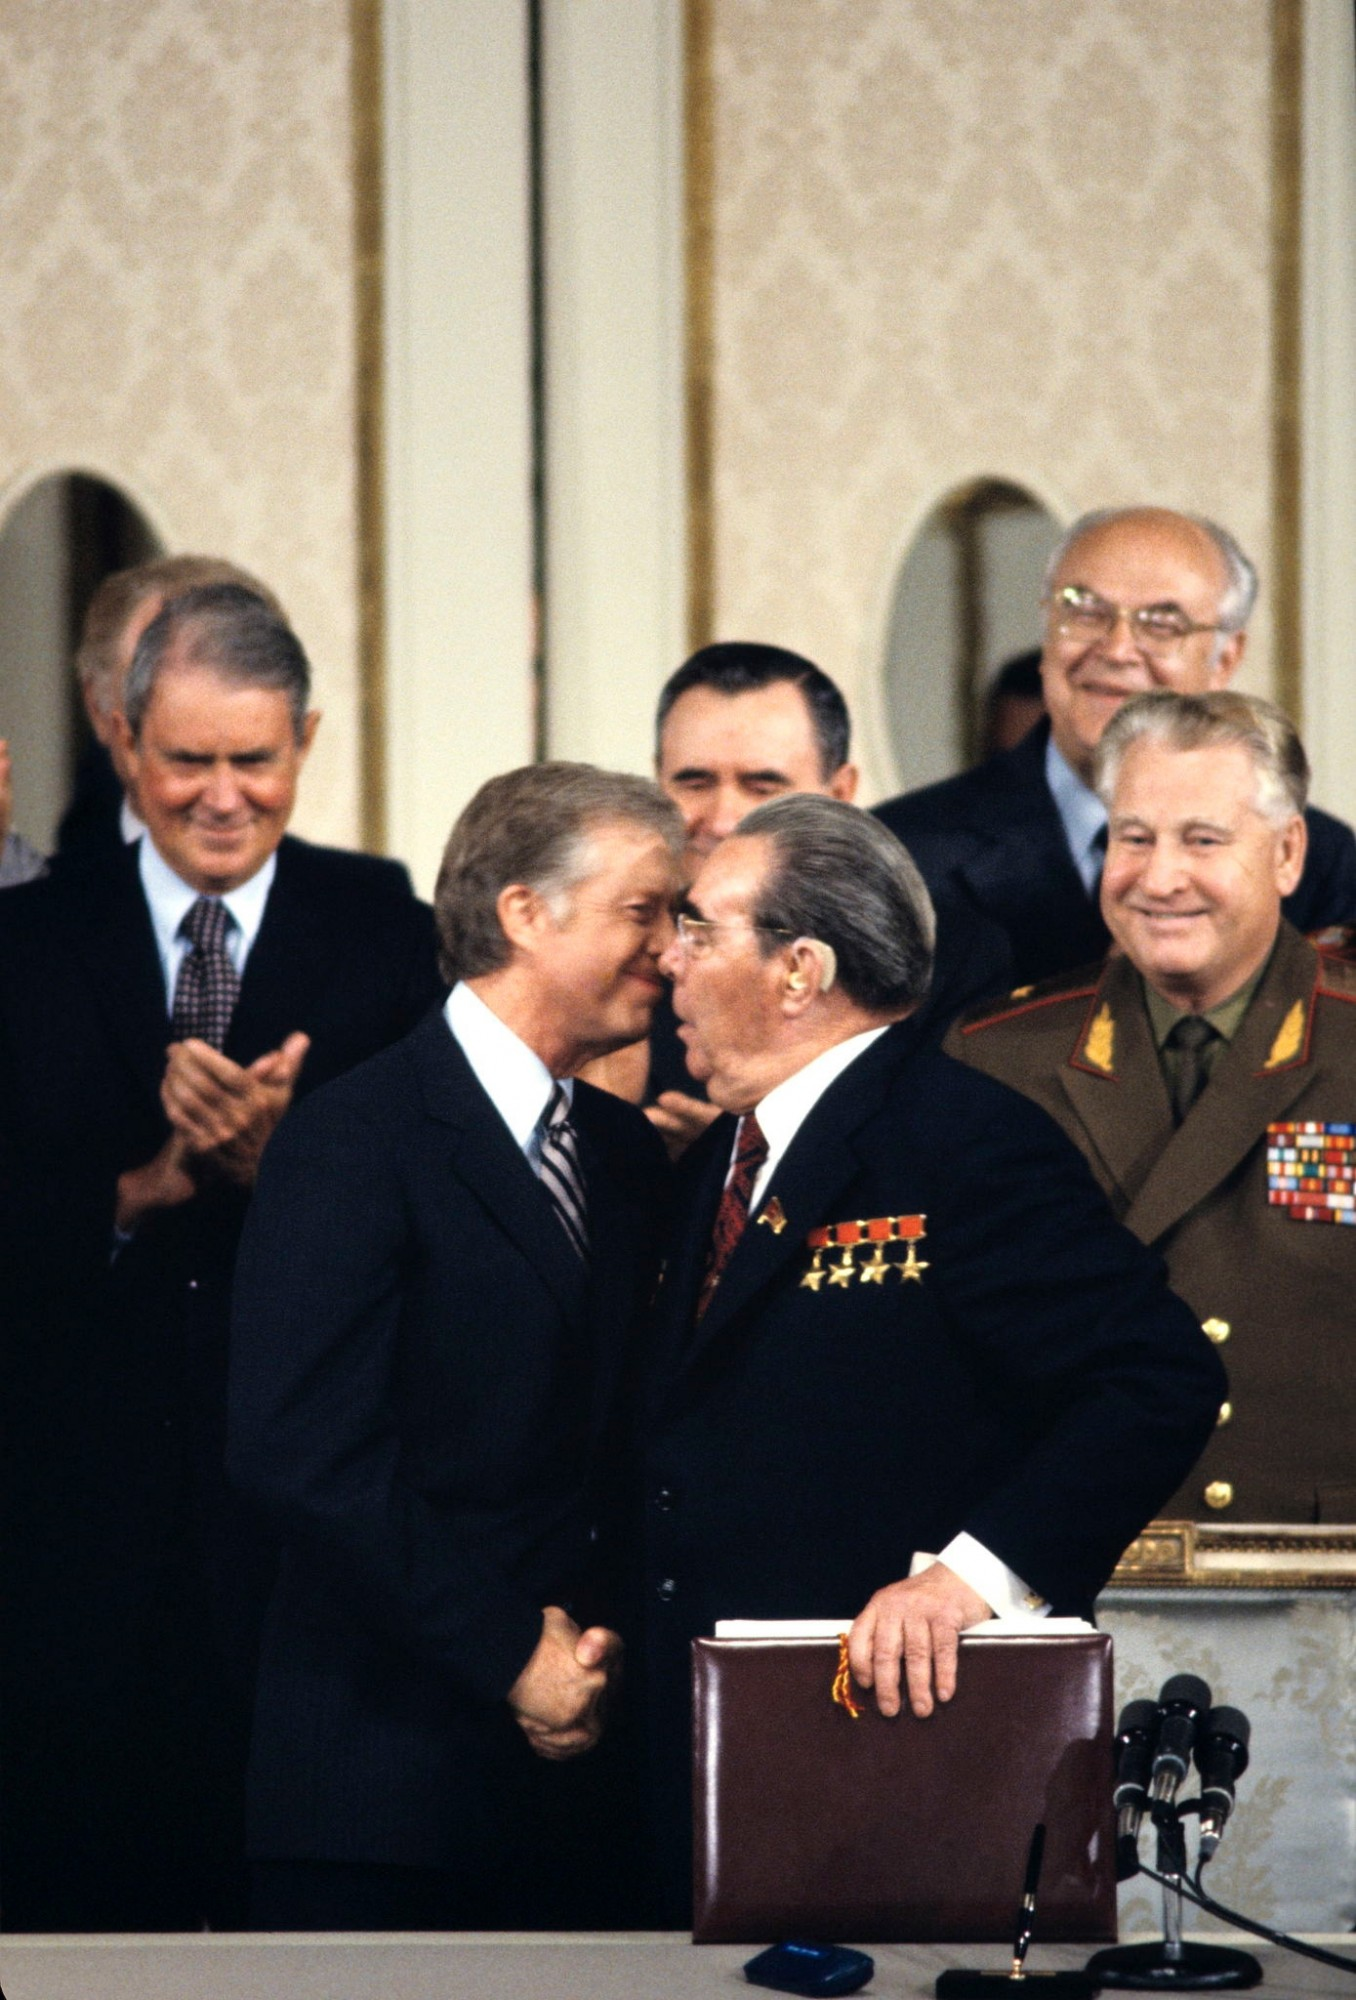 1979 Vienna Summit Between United States And Ussr Signature Of The Salt Ii Treaty On Disarmament